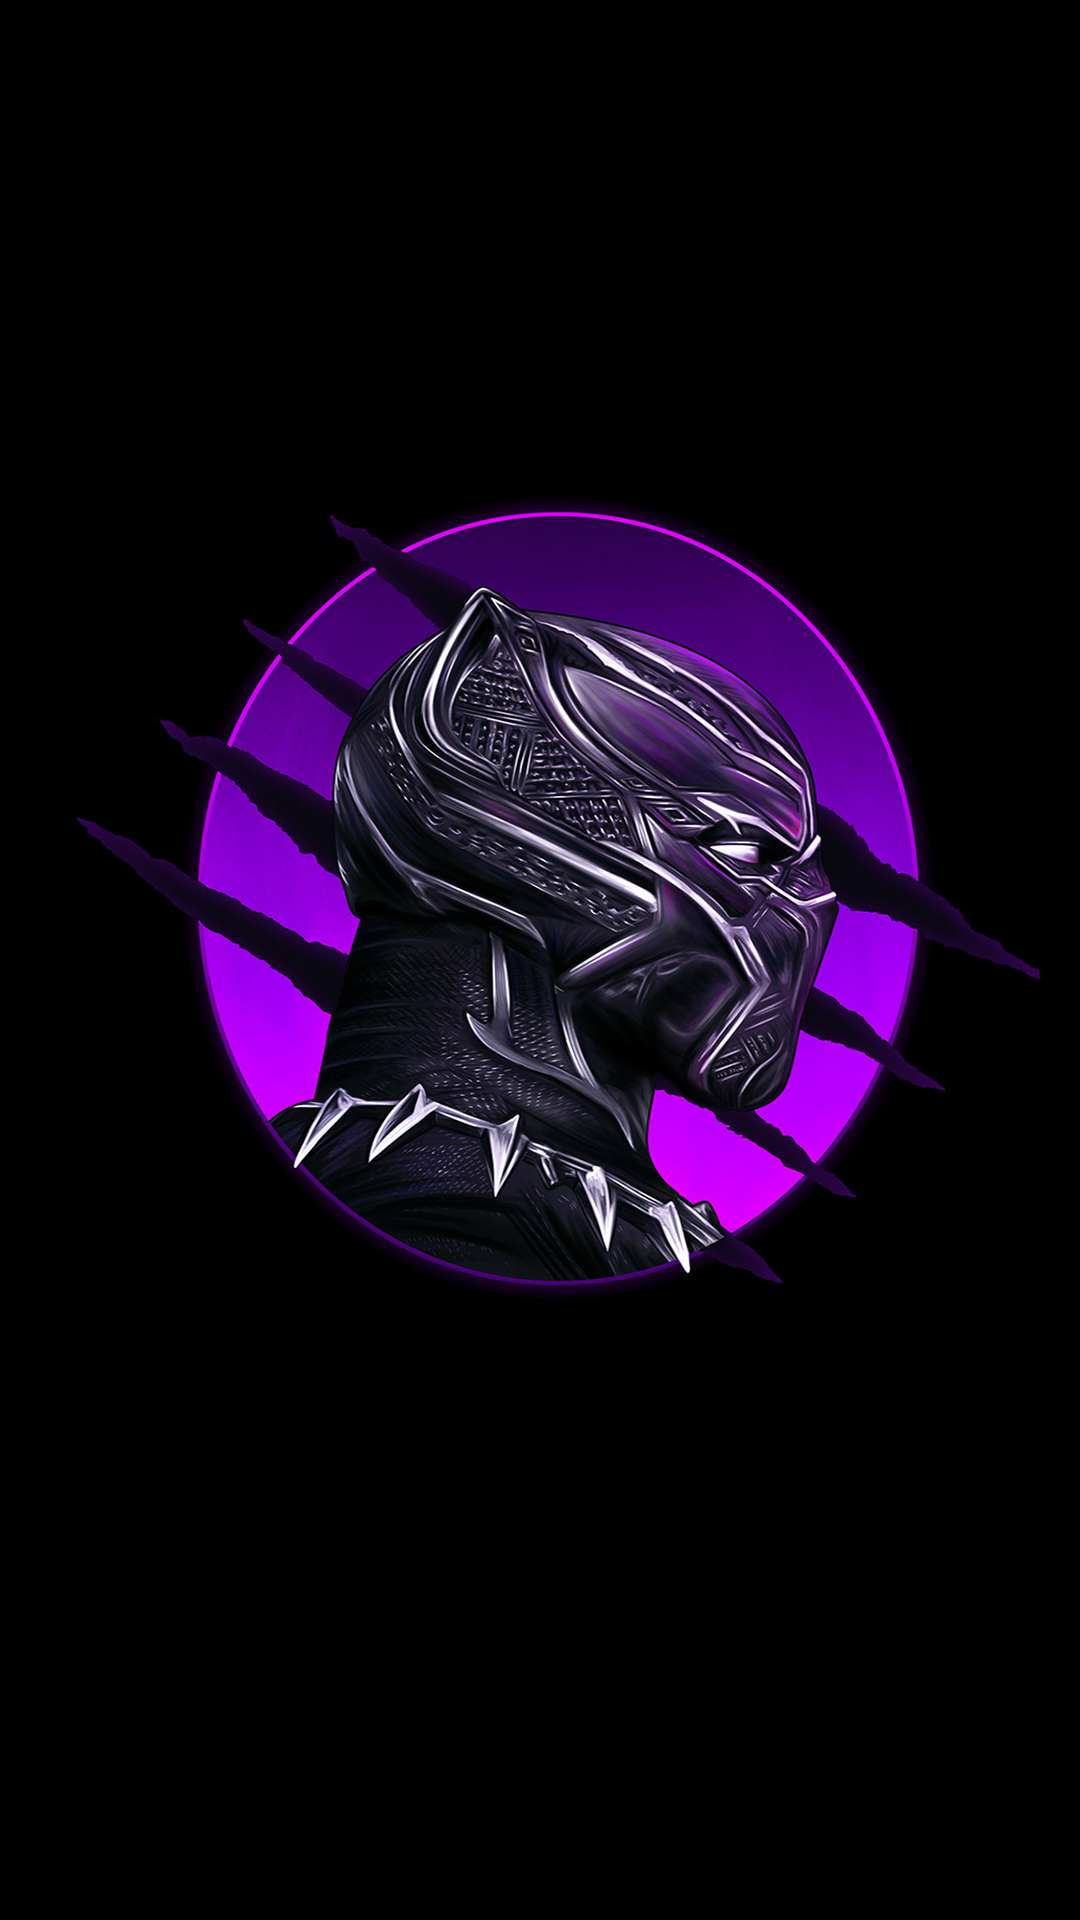 Artistic Iphone Wallpaper Hd Black Panther Dark Iphone Wallpaper Iphone Wallpapers